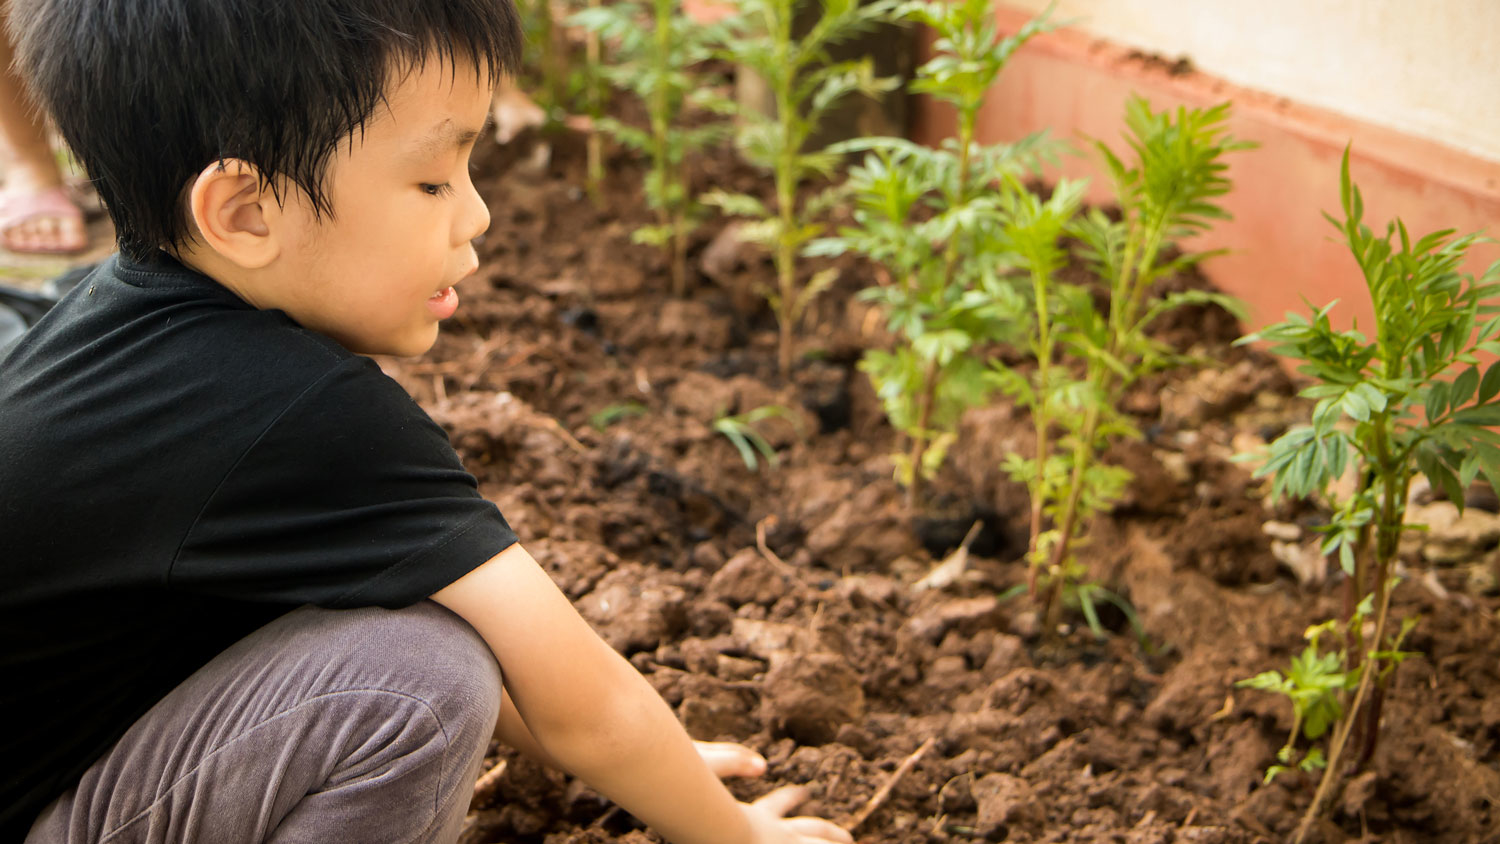 A young boy in a garden planting greens